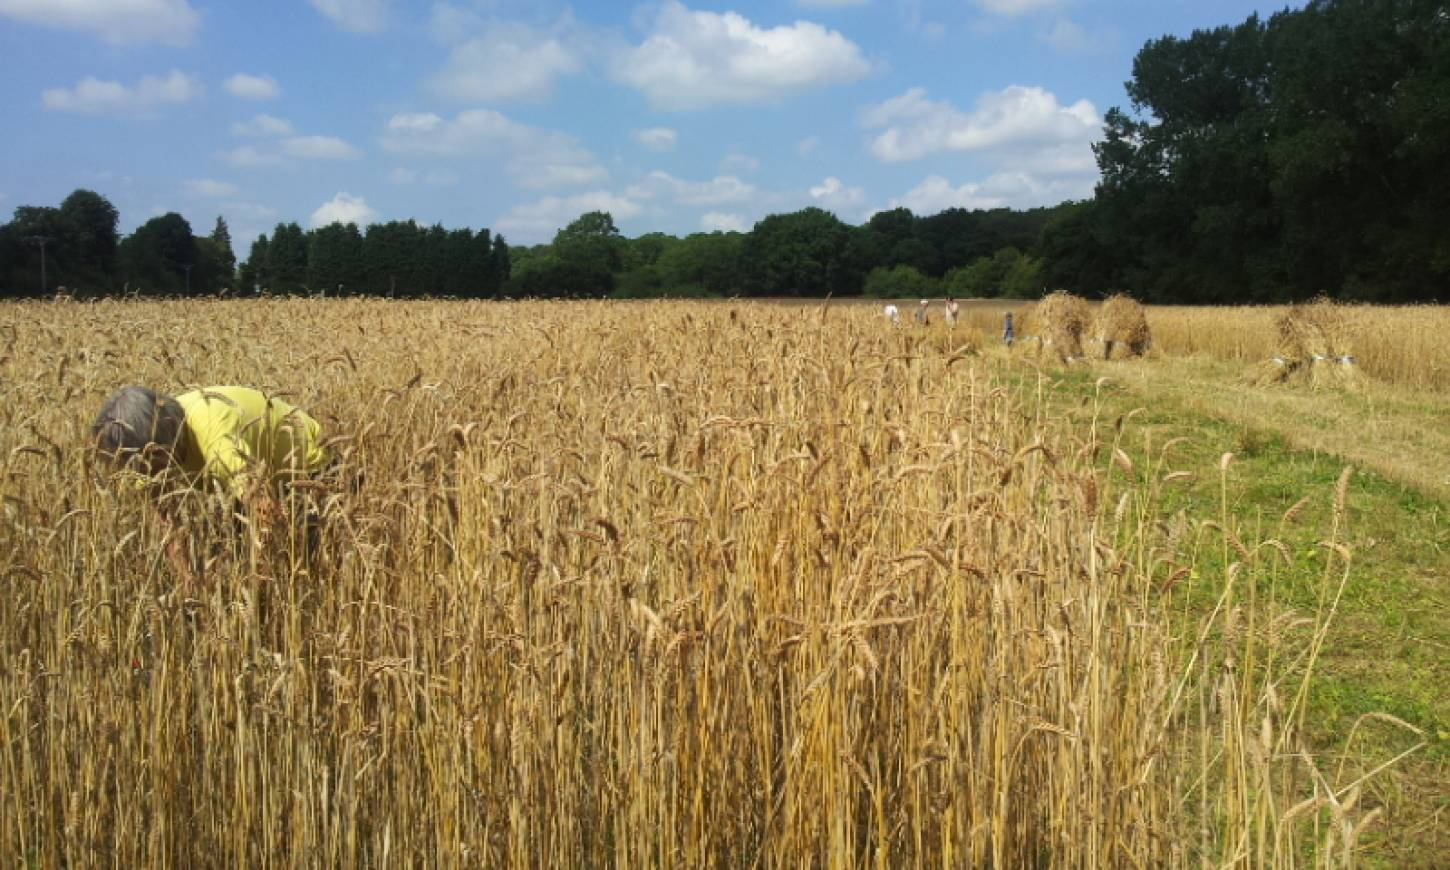 WoWo manual harvest pic: Ann Bodkin - 11:46am&nbsp;8<sup>th</sup>&nbsp;Aug.&nbsp;'15